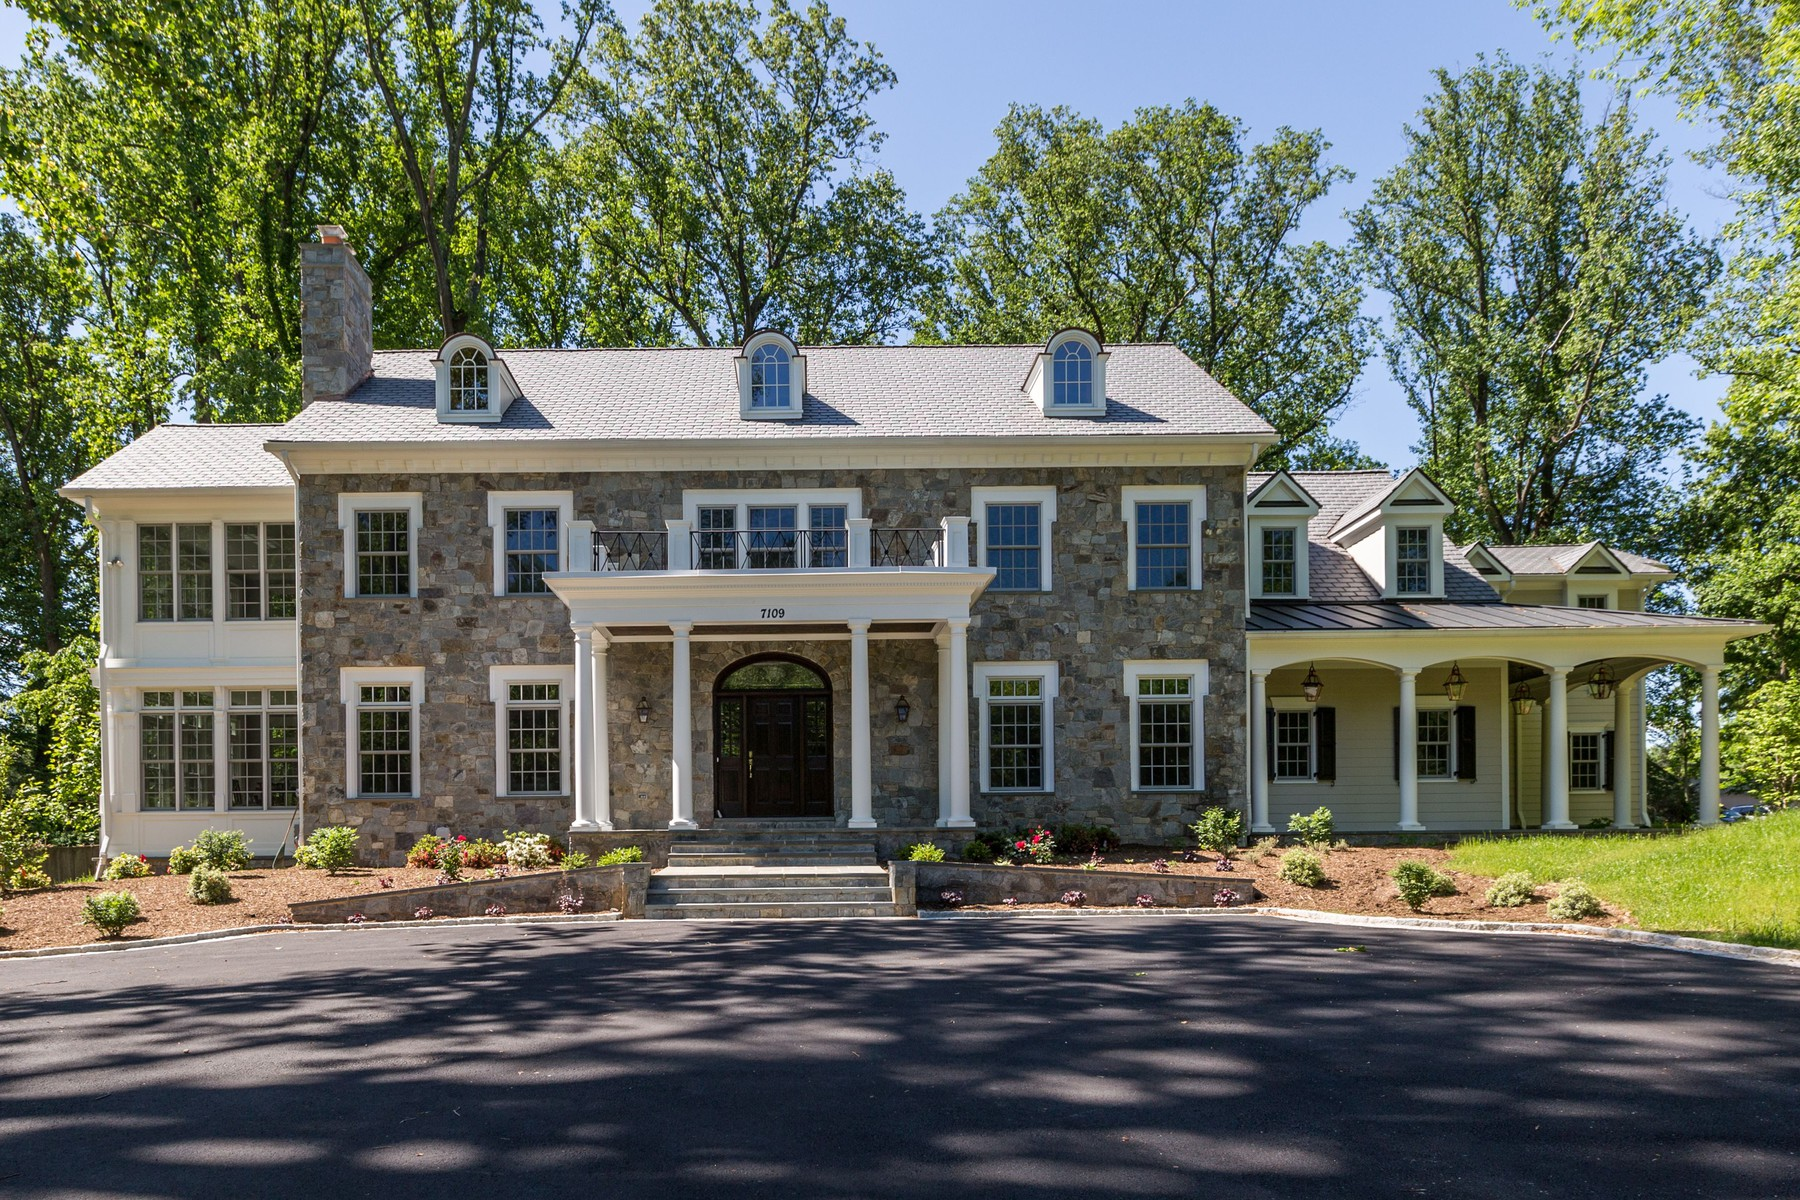 Single Family Home for Sale at 7109 Benjamin Street, Mclean McLean, Virginia, 22101 United States